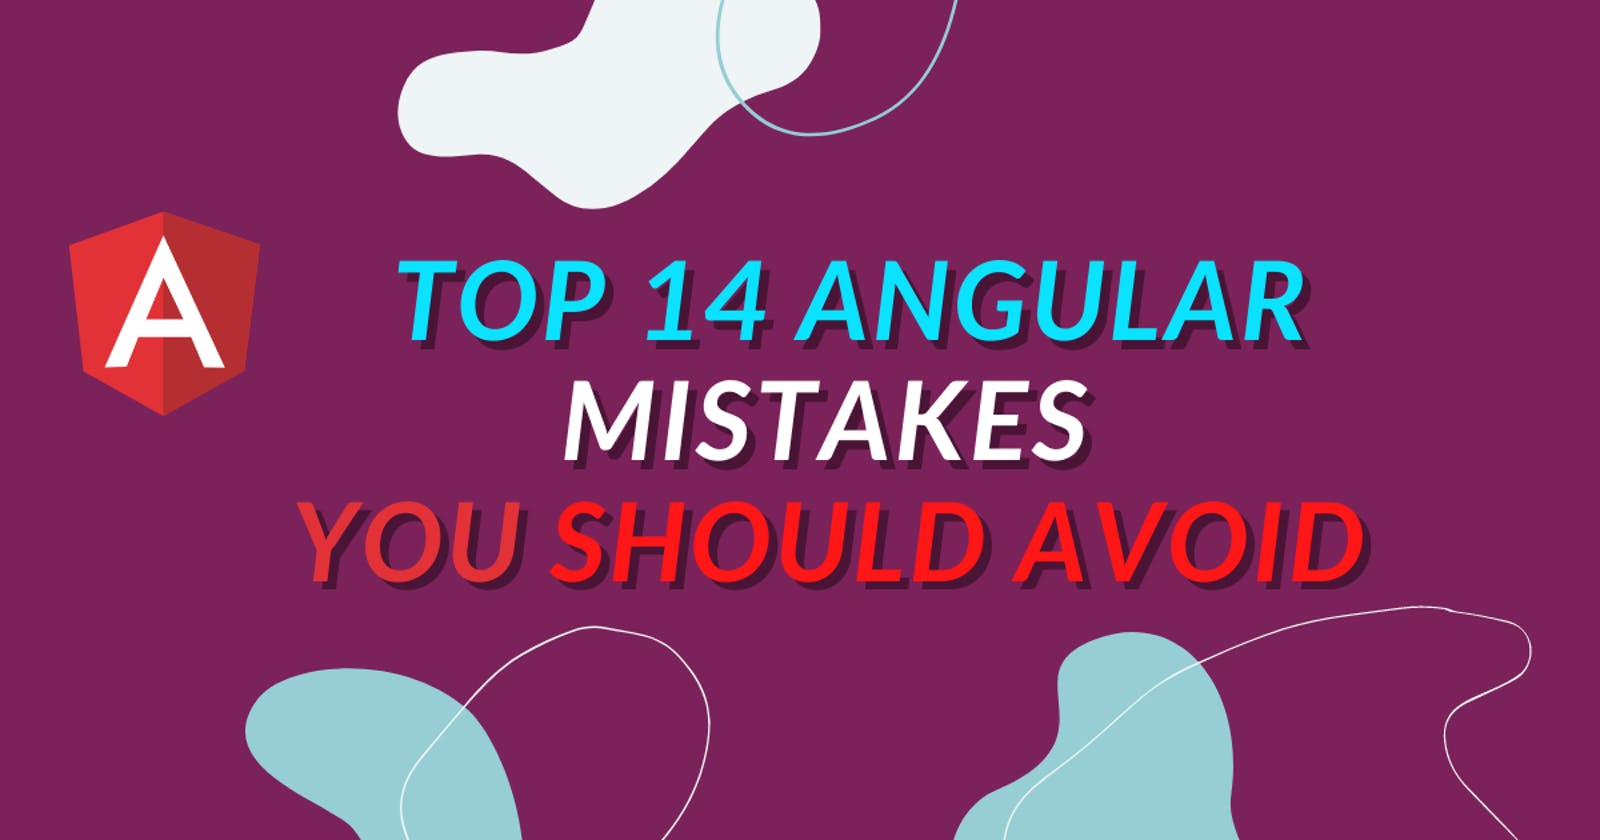 Top 14 Angular mistakes you should Avoid